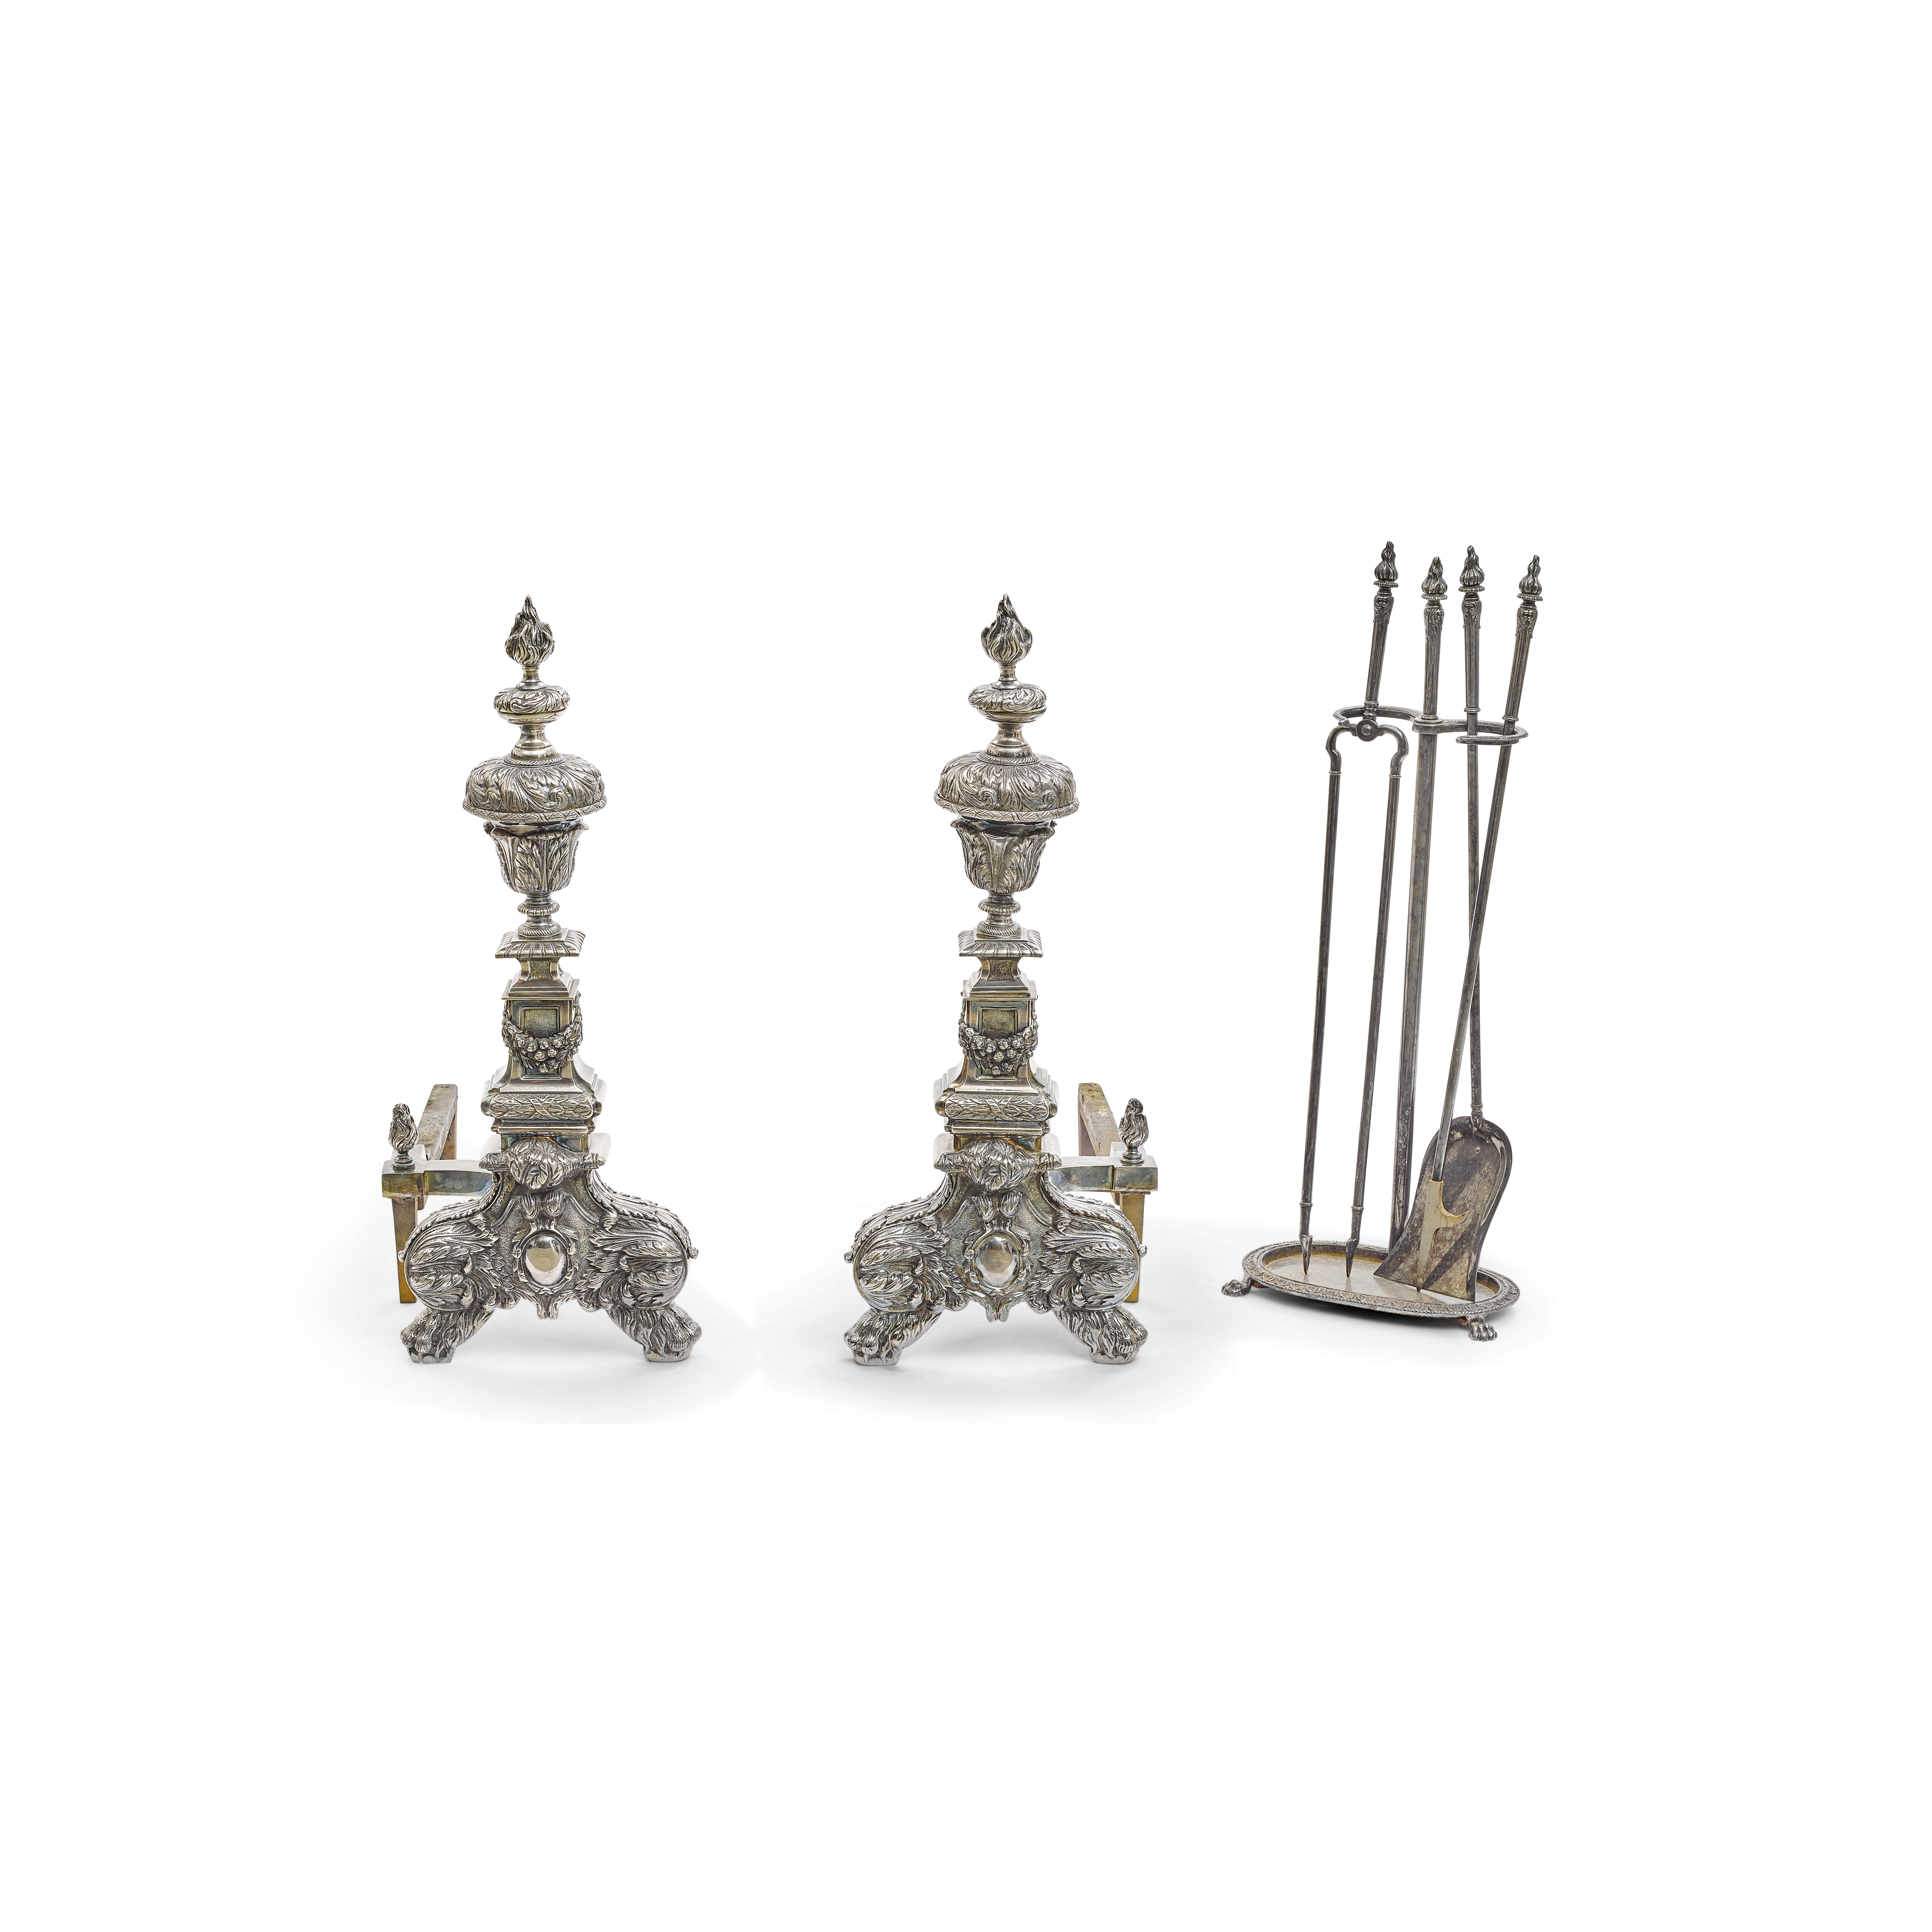 Lot 128 - A pair of English Baroque Style silvered bronze and metal andirons with tools and stand 19th century